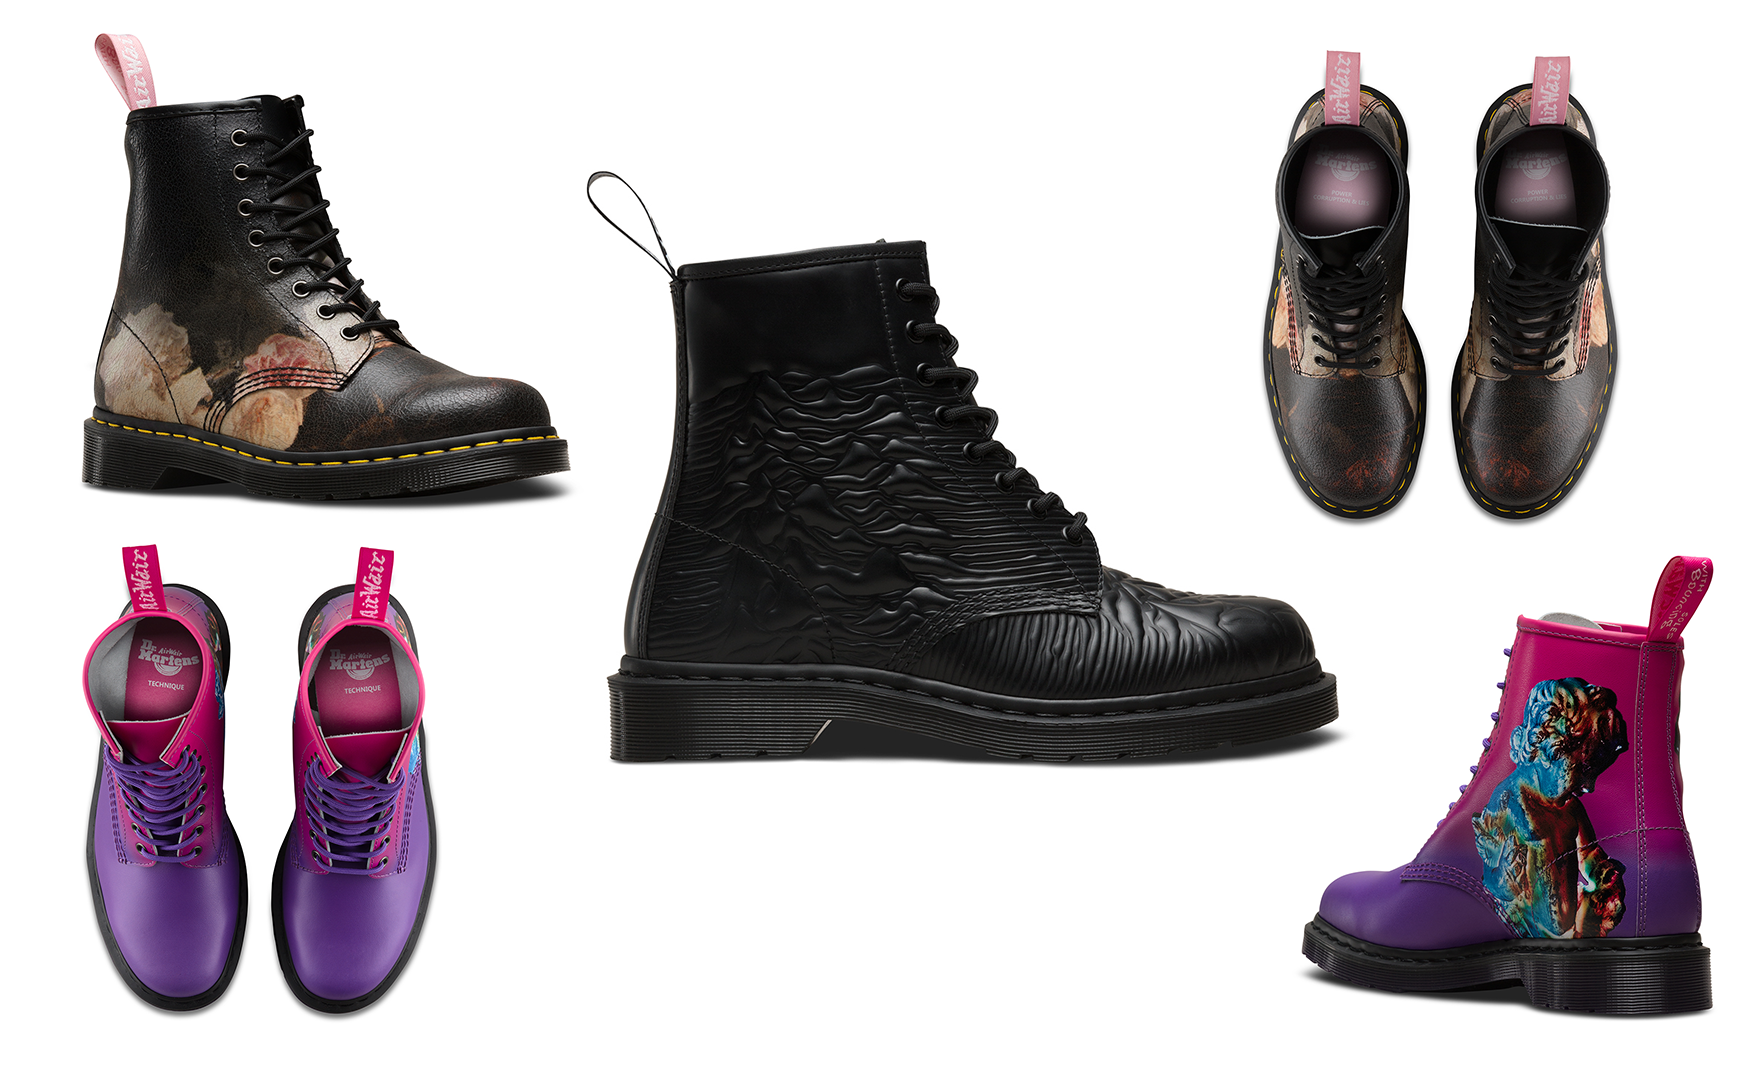 6e15688cf Joy Division and New Order Dr. Martens Boots - Post-Punk.com